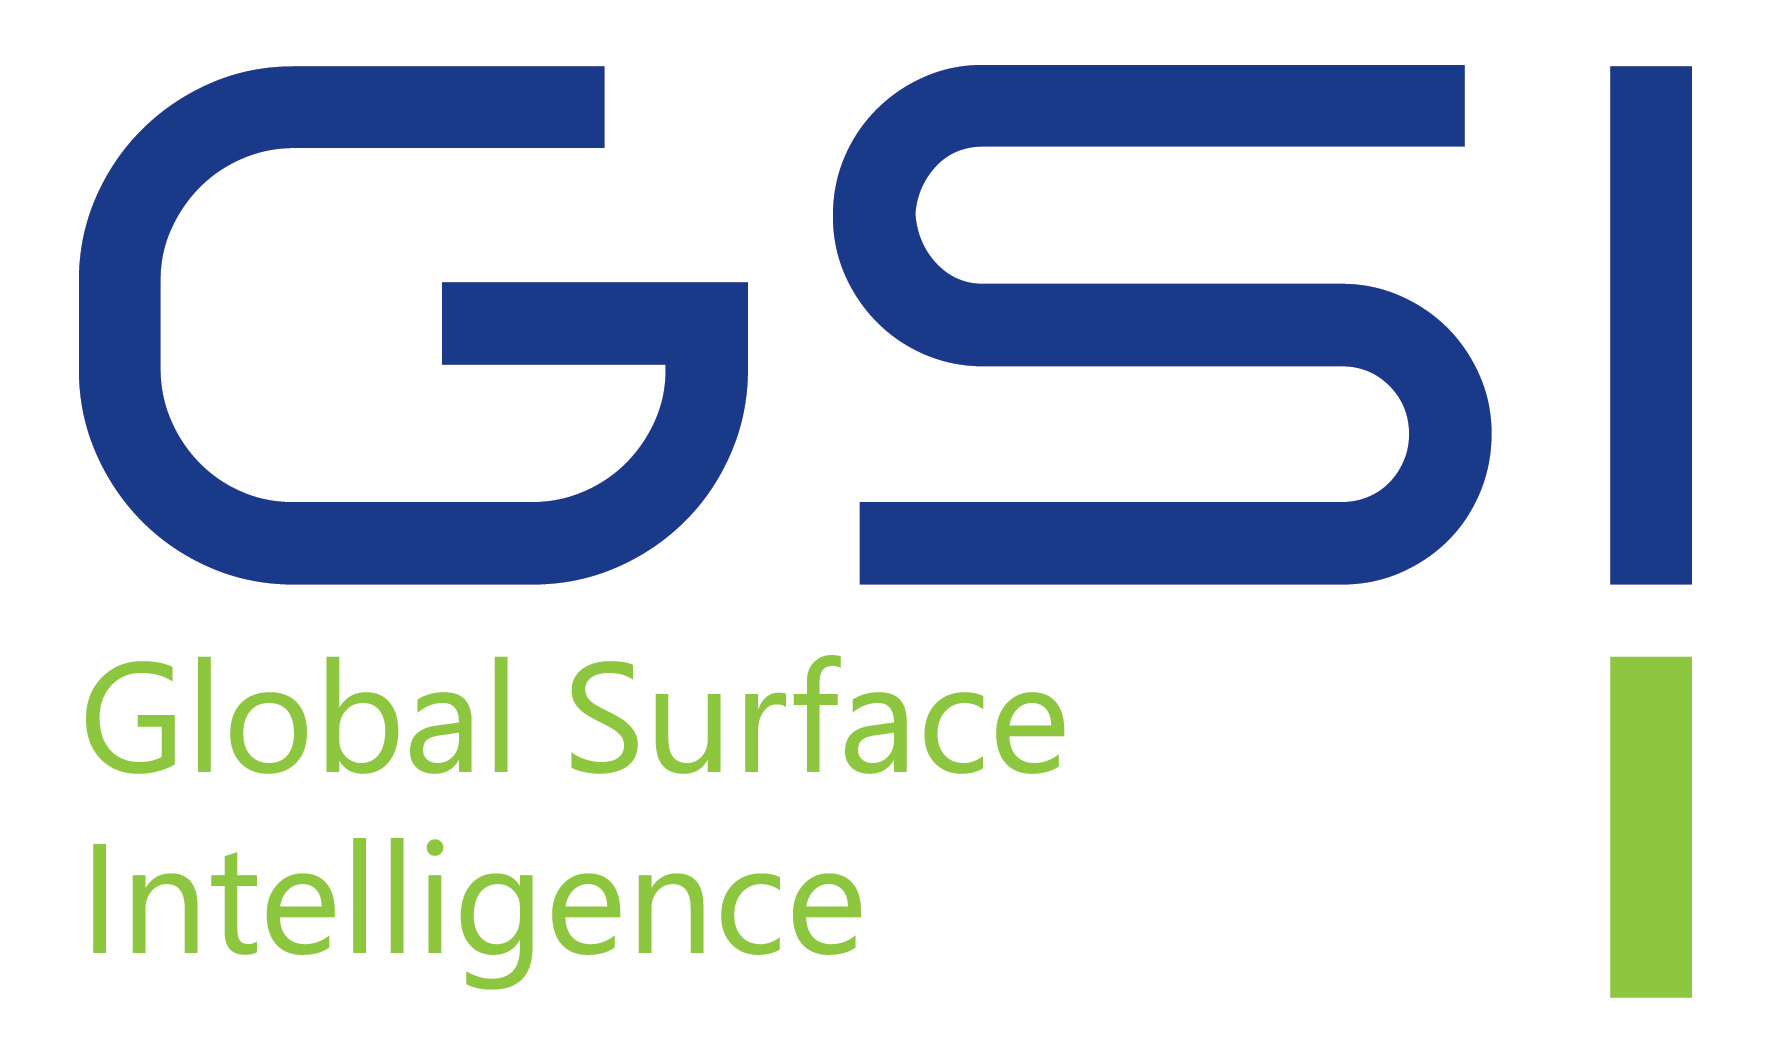 Global Surface Intelligence